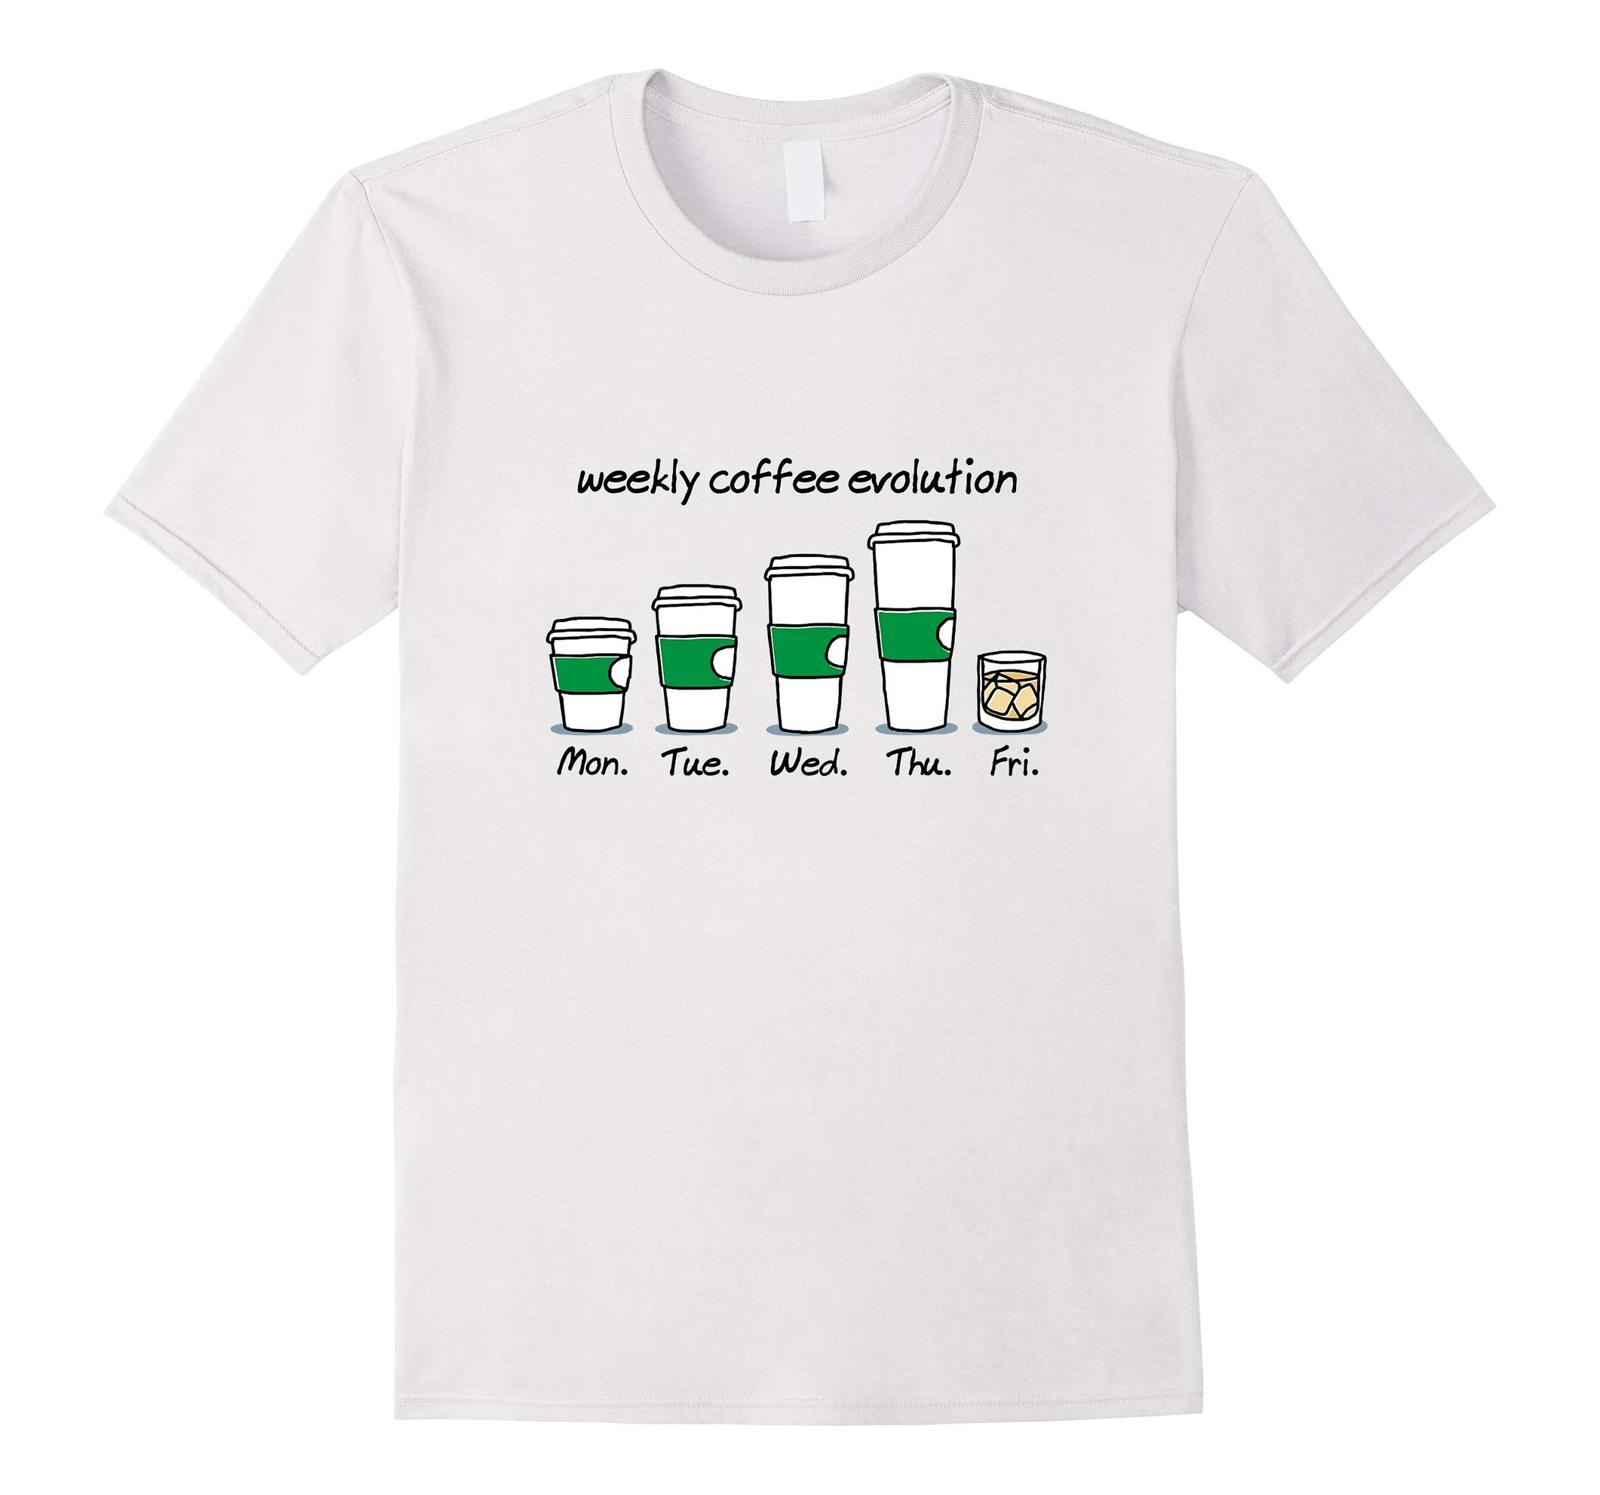 New Shirts - Weekly Coffee Evolution Drink T-Shirt Men image 4